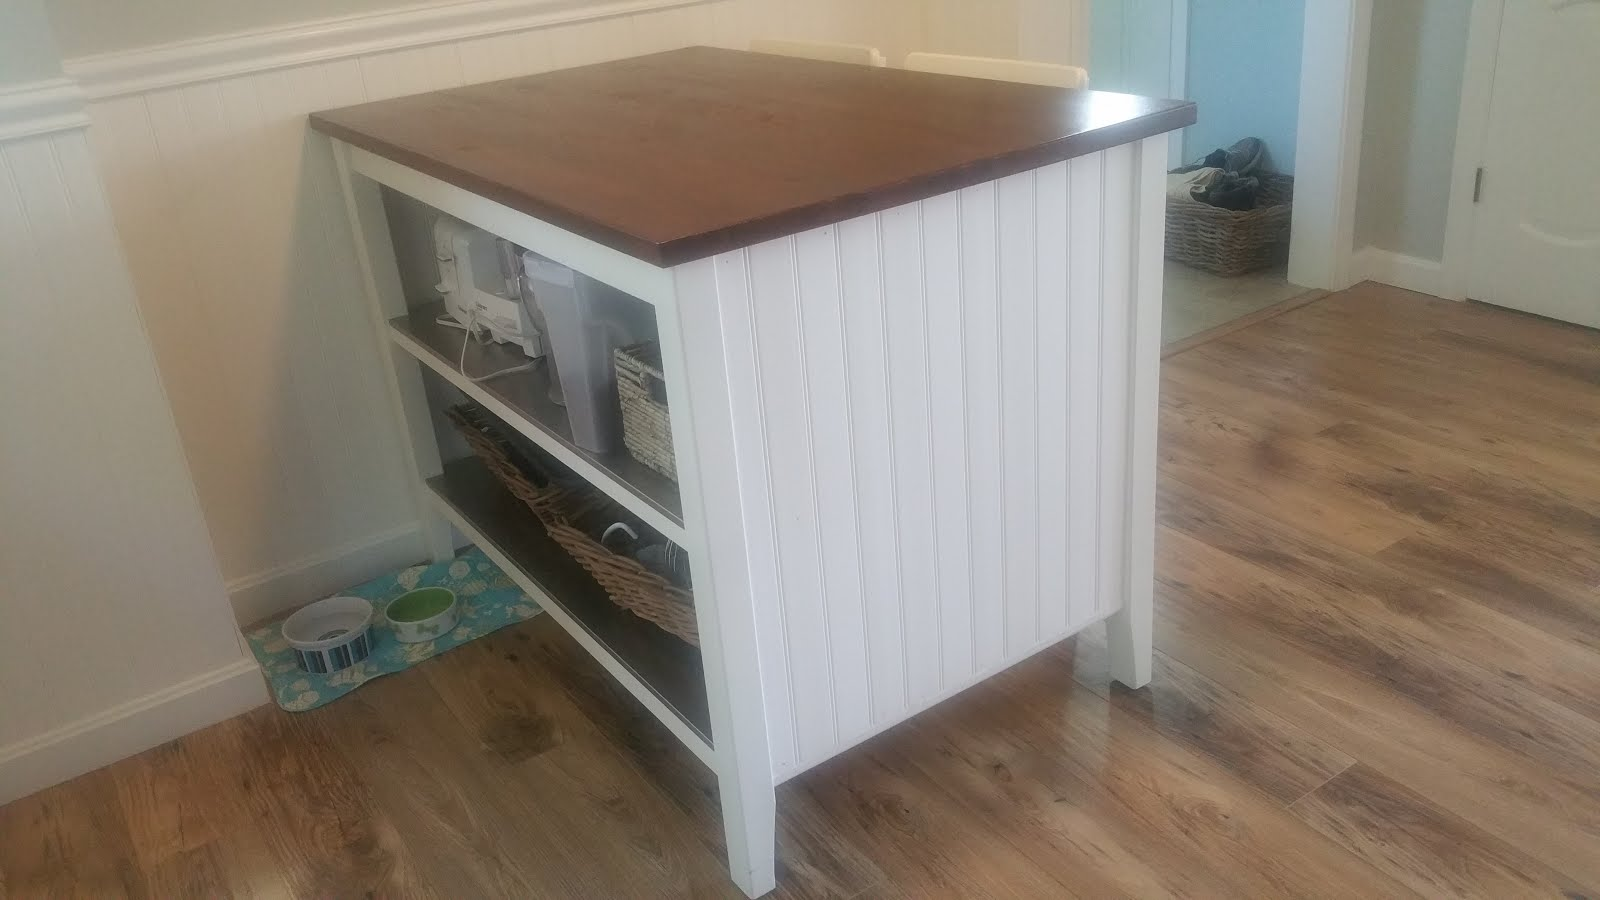 salt marsh cottage ikea kitchen island hack - Ikea Kitchen Island Hack